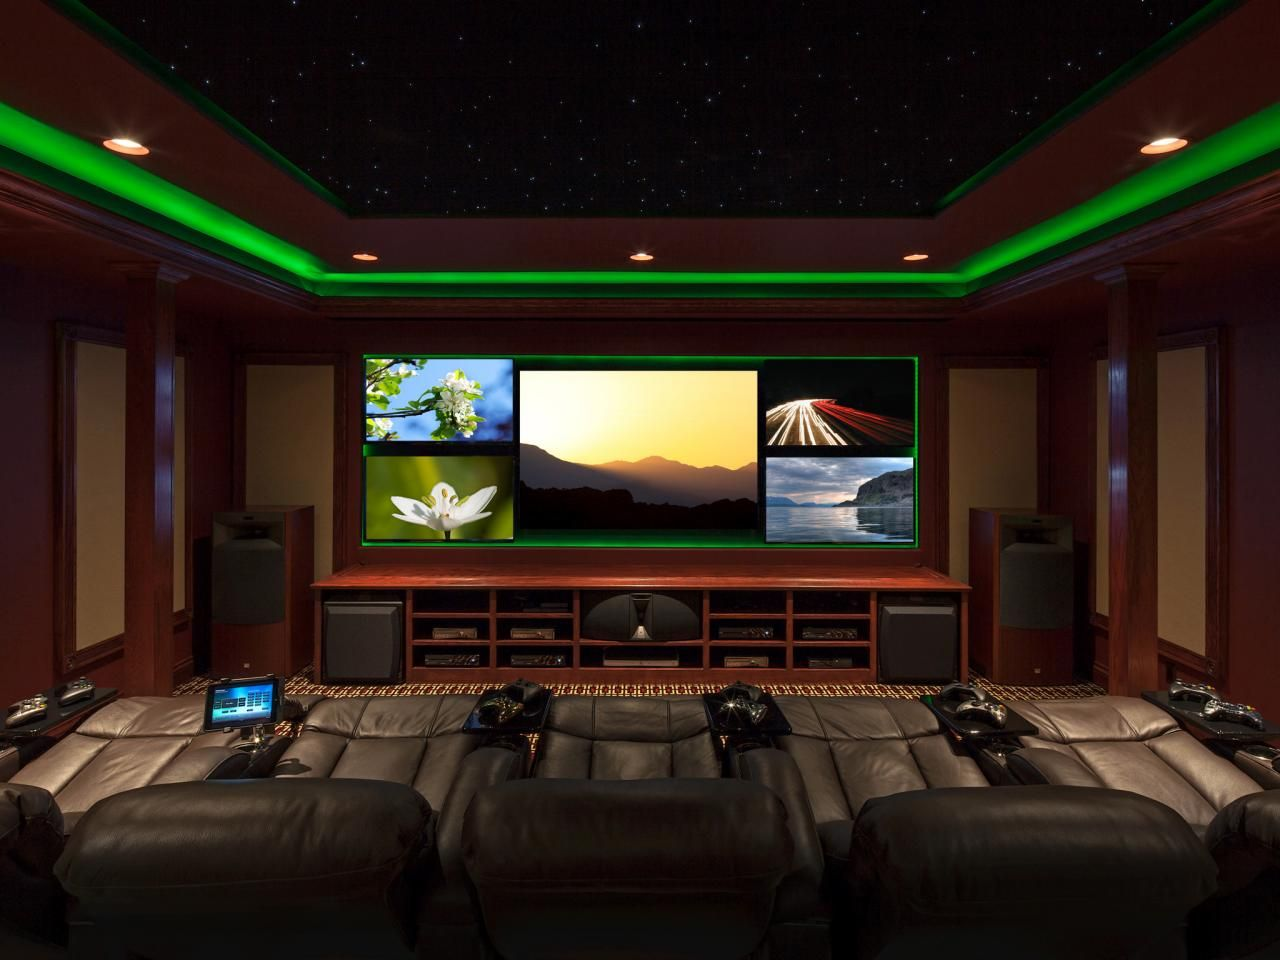 Sensational media room design with couches coffee table a for Media room interior design ideas